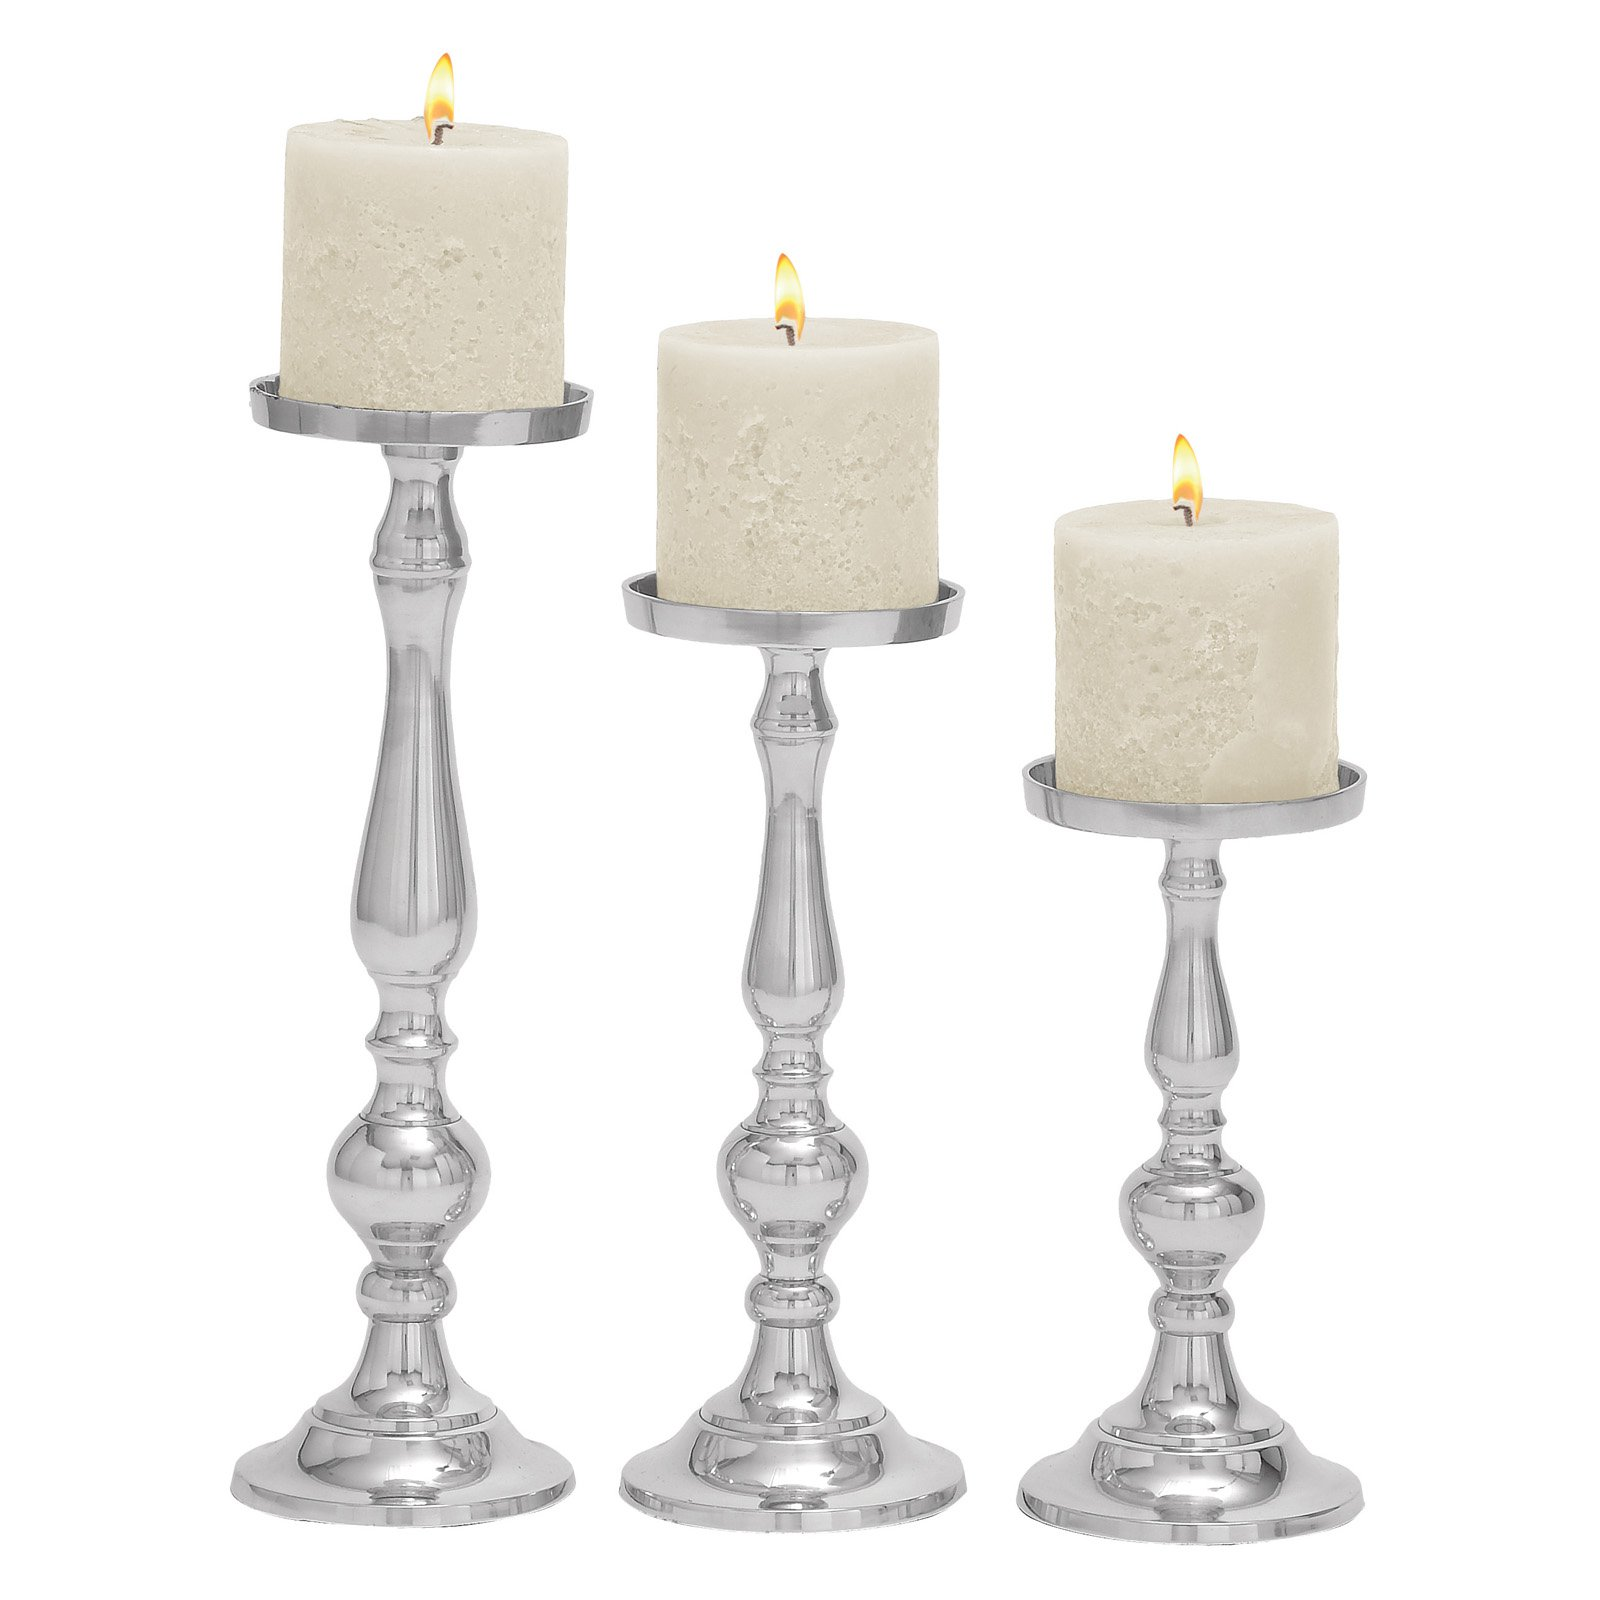 Decmode Aluminum Candle Holder, Set of 3, Silver by DecMode